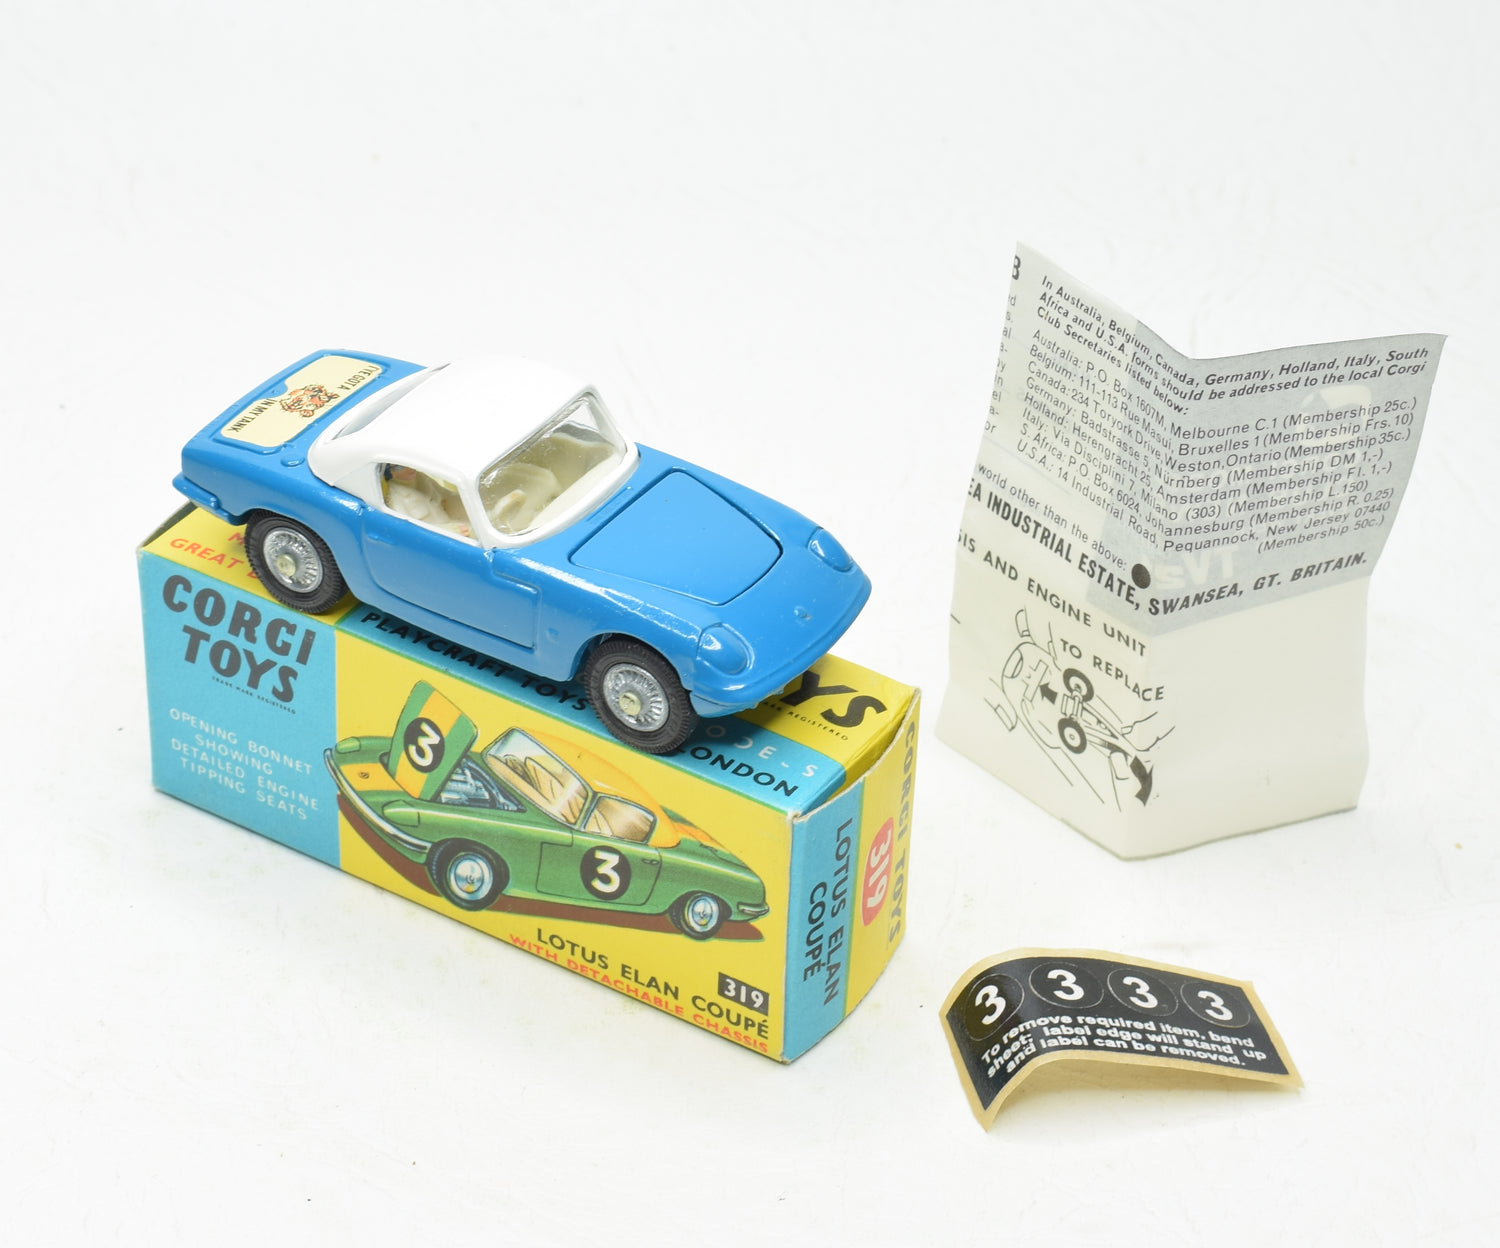 Corgi Toys 319 Lotus Elan Virtually Mint/Boxed 'Tiger in your Tank' 'Wickham' Collection